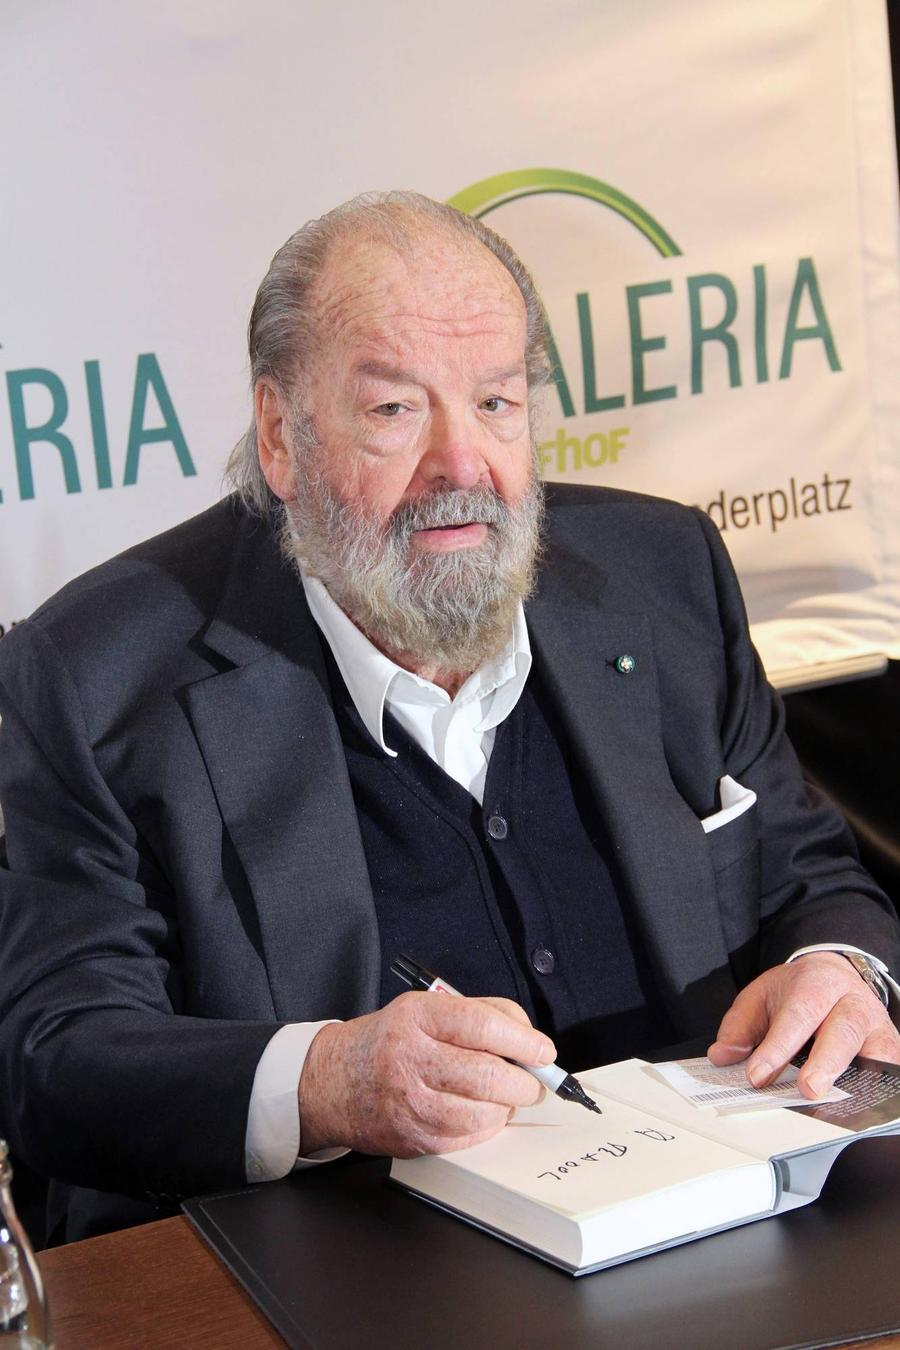 Italian Film Star Bud Spencer Dead